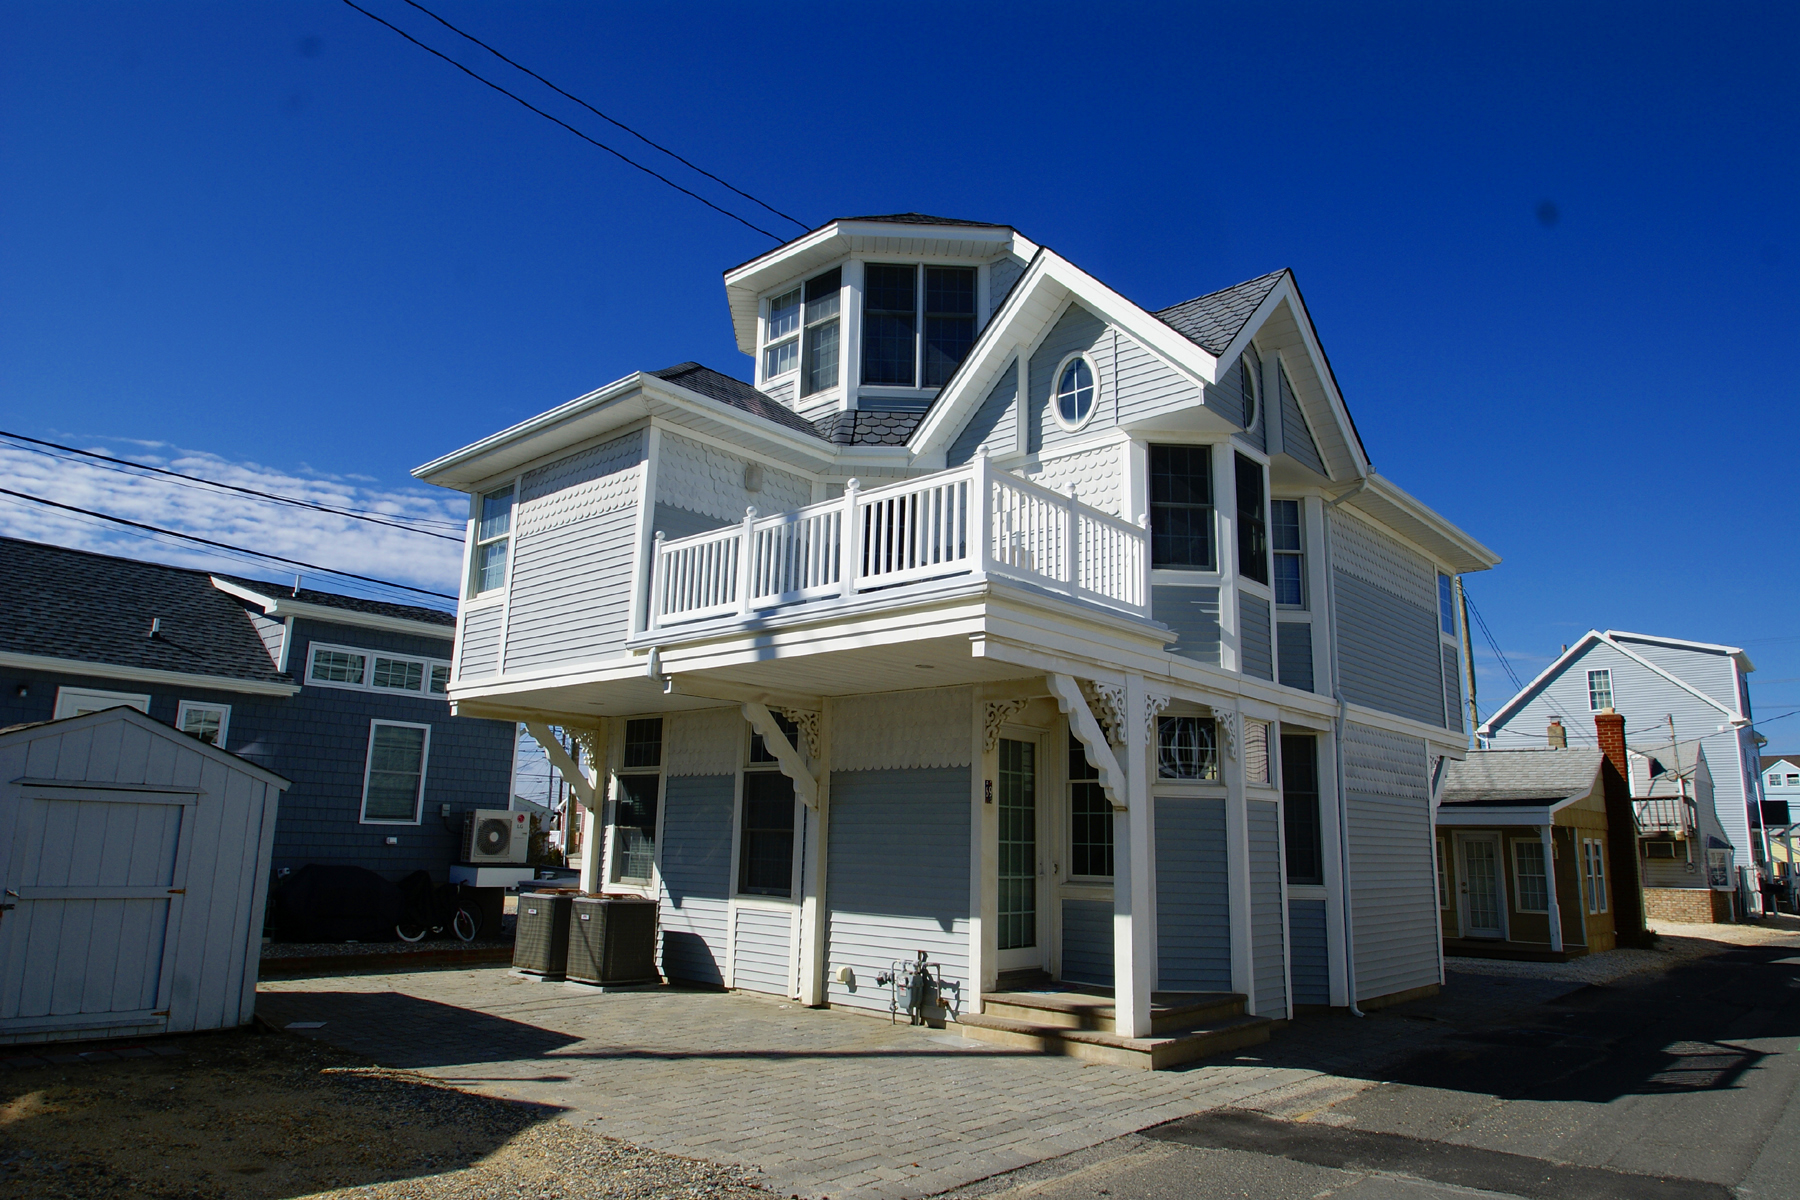 Single Family Home for Sale at Immaculate Ocean Block Shore Colonial 69 Beach Way, Lavallette, New Jersey 08735 United States